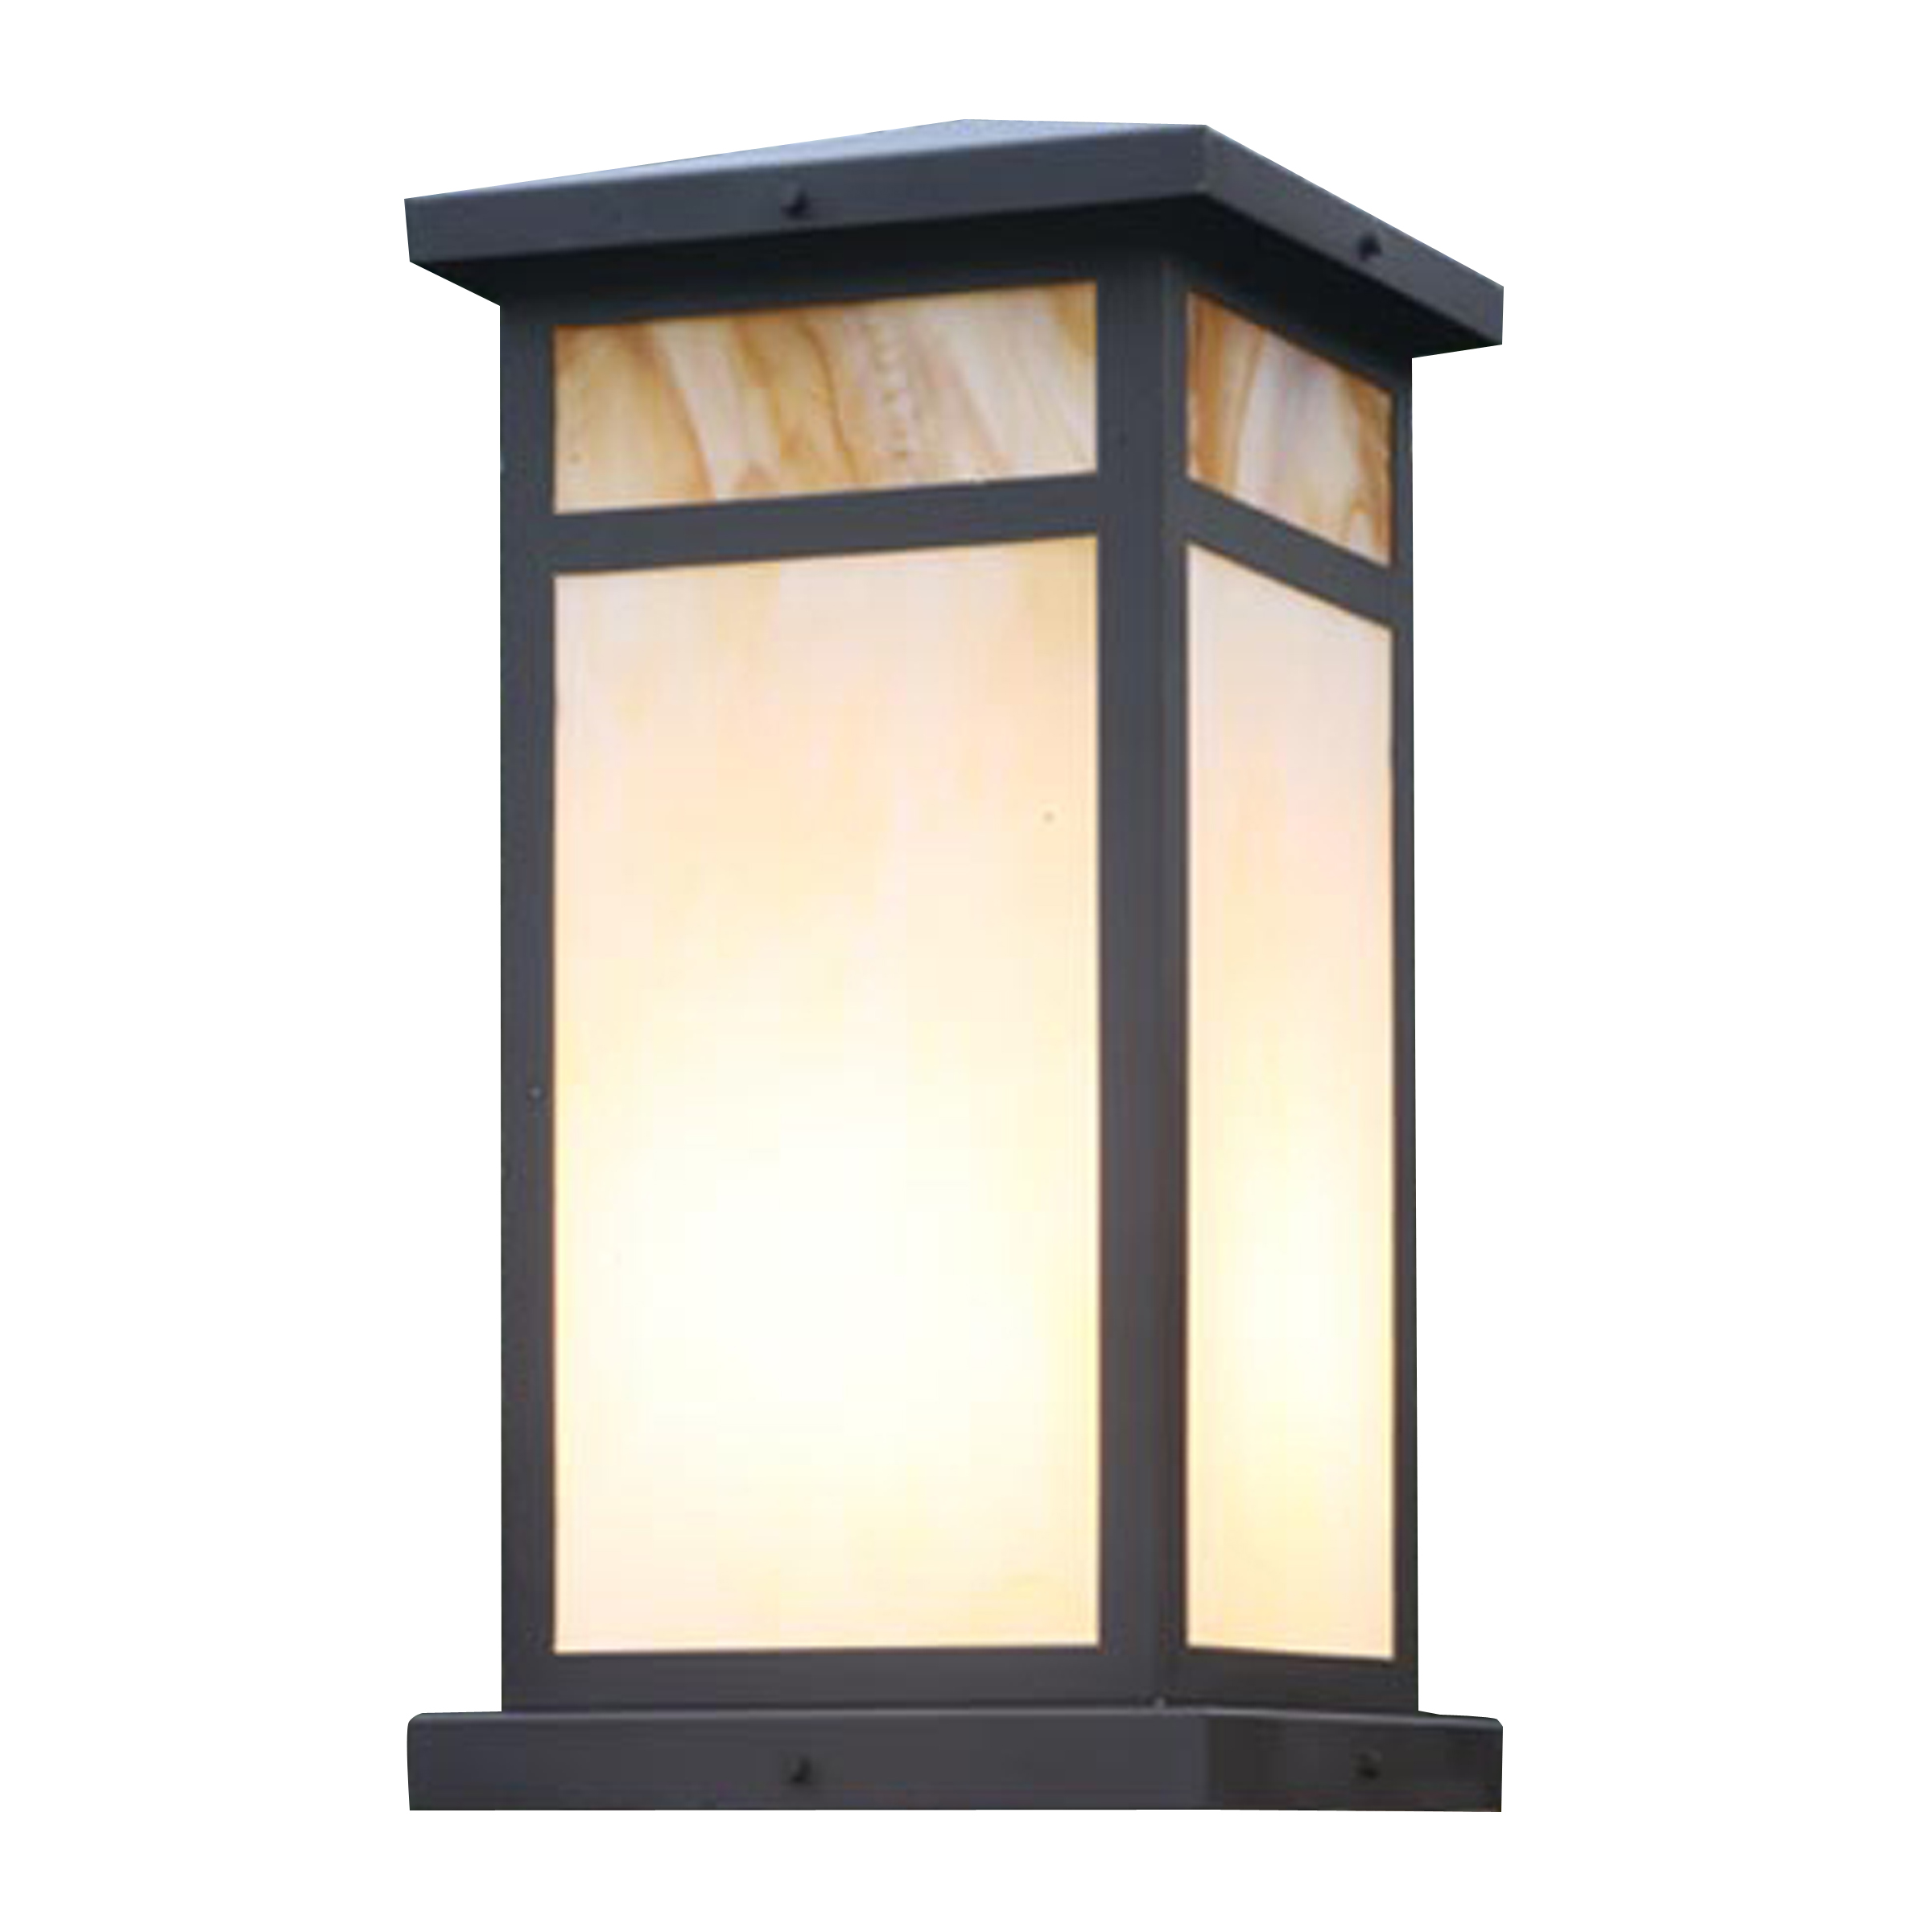 Cc4620 exterior light mario contract lighting - Exterior accent lighting for home ...